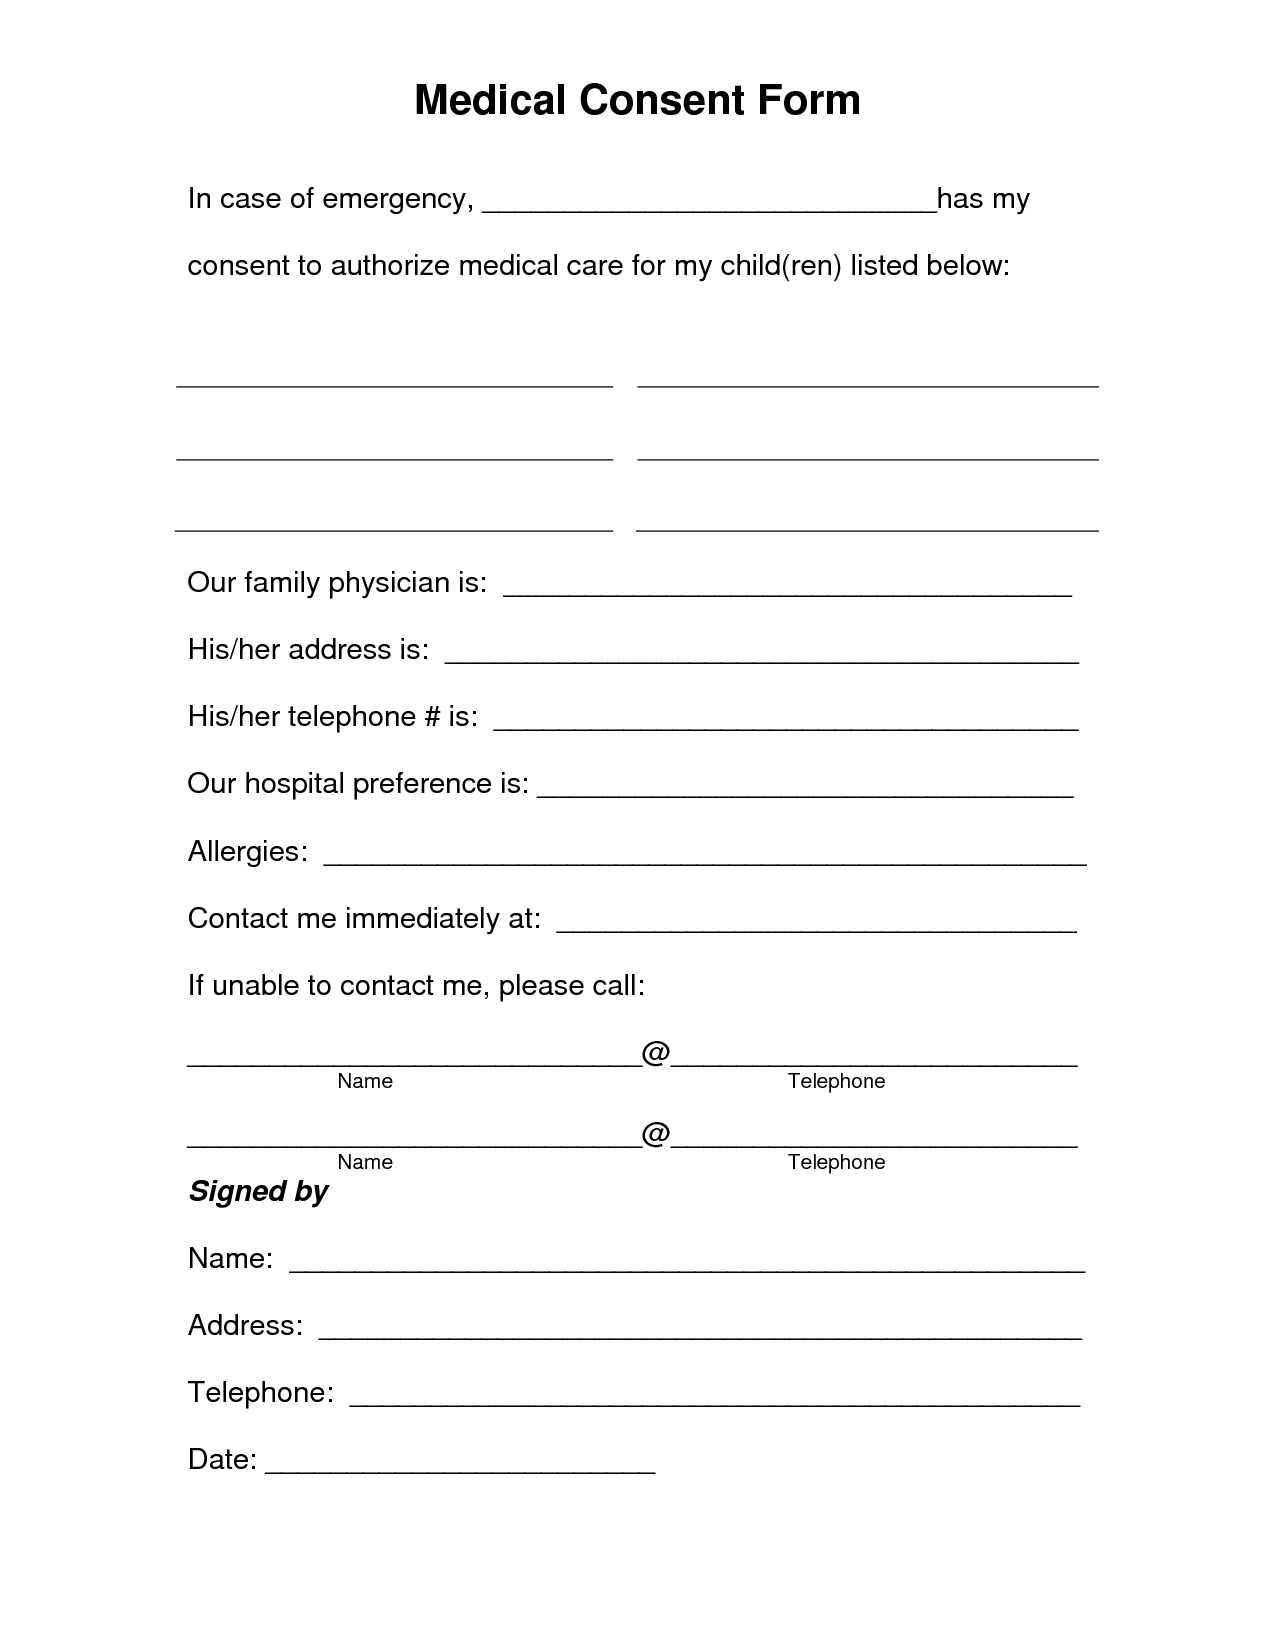 free printable medical consent form free medical consent form the girls pinterest. Black Bedroom Furniture Sets. Home Design Ideas